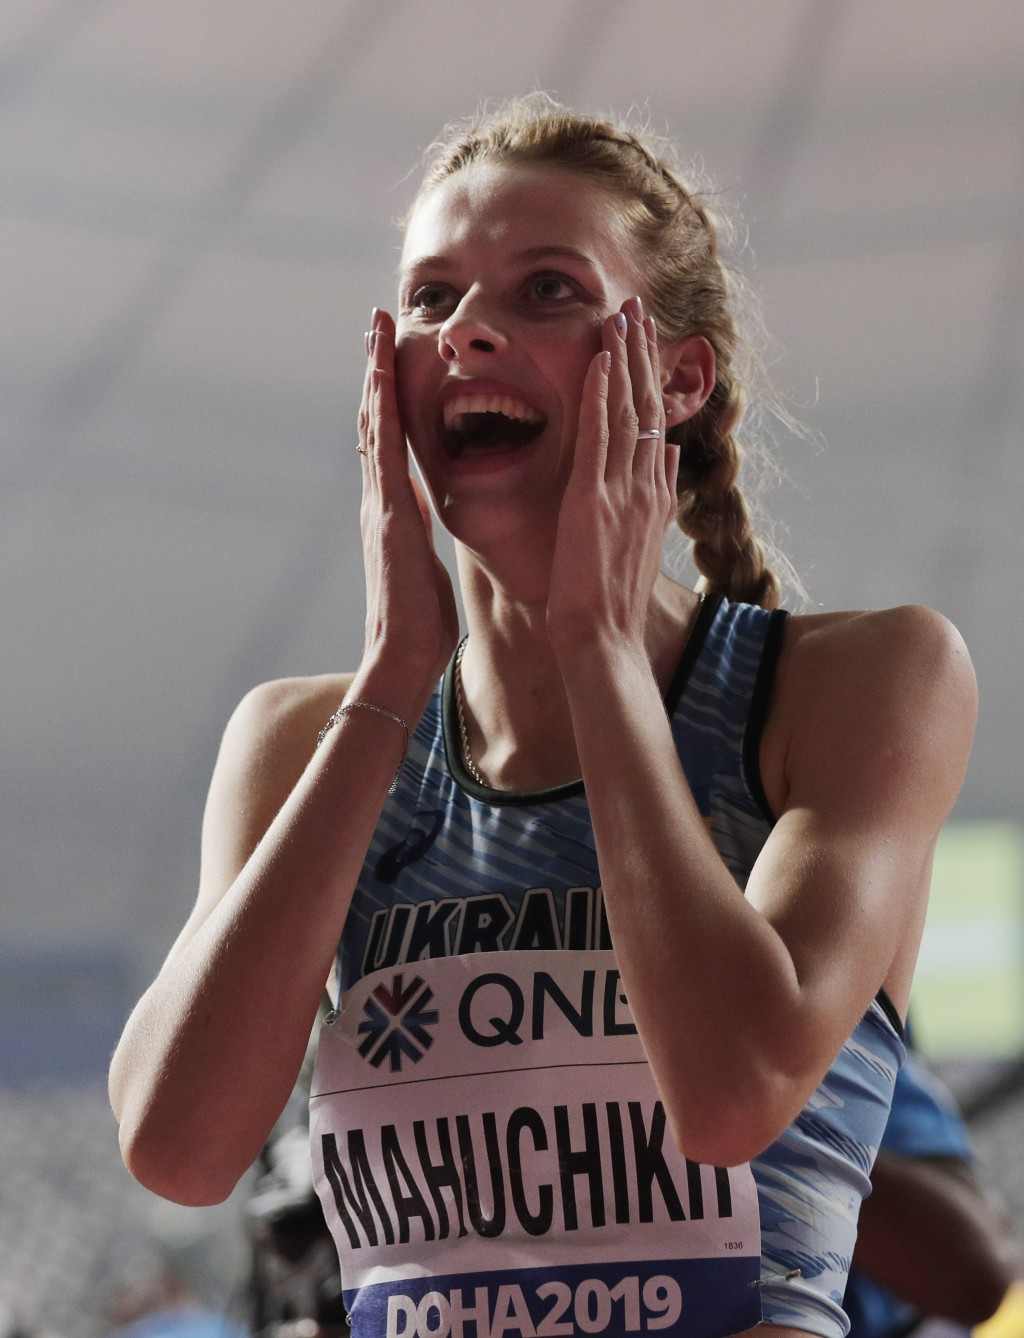 Yaroslava Mahuchikh, of Ukraine reacts after making a clearance in the women's high jump final at the World Athletics Championships in Doha, Qatar, Mo...